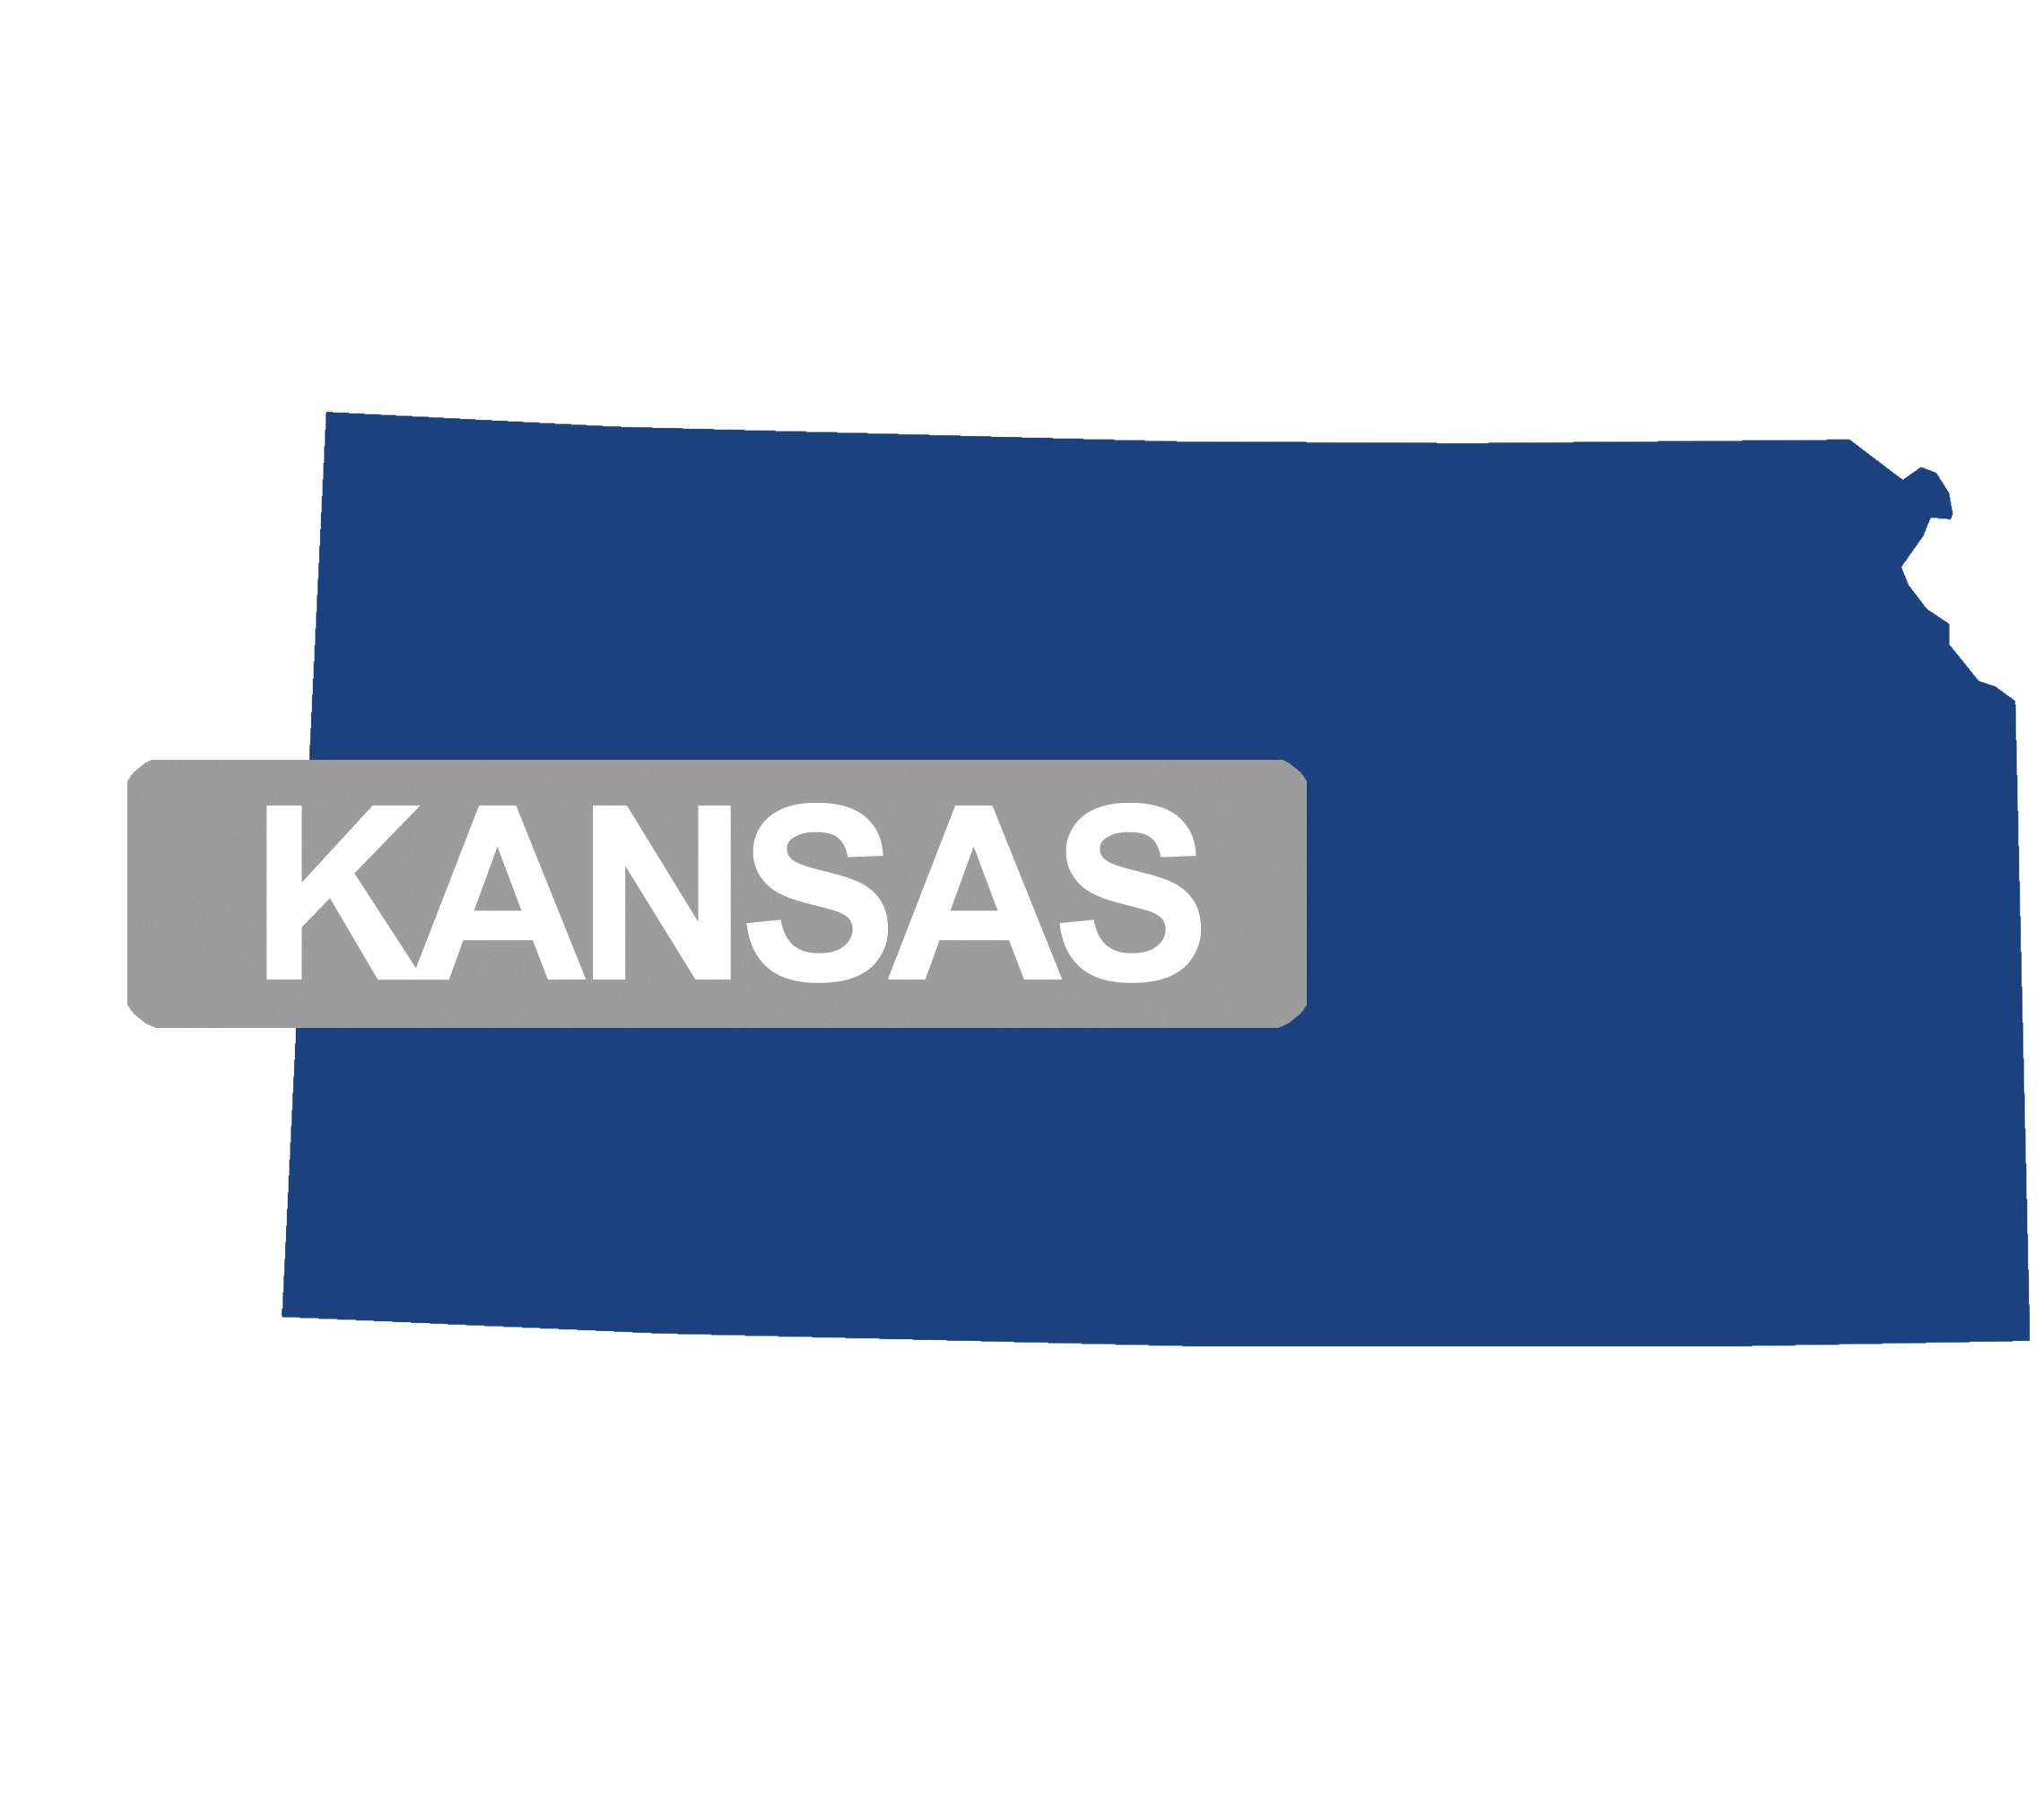 Kansas Electrical Continuing Education for Journeyman, Master Electricians, and Electrical Contractors